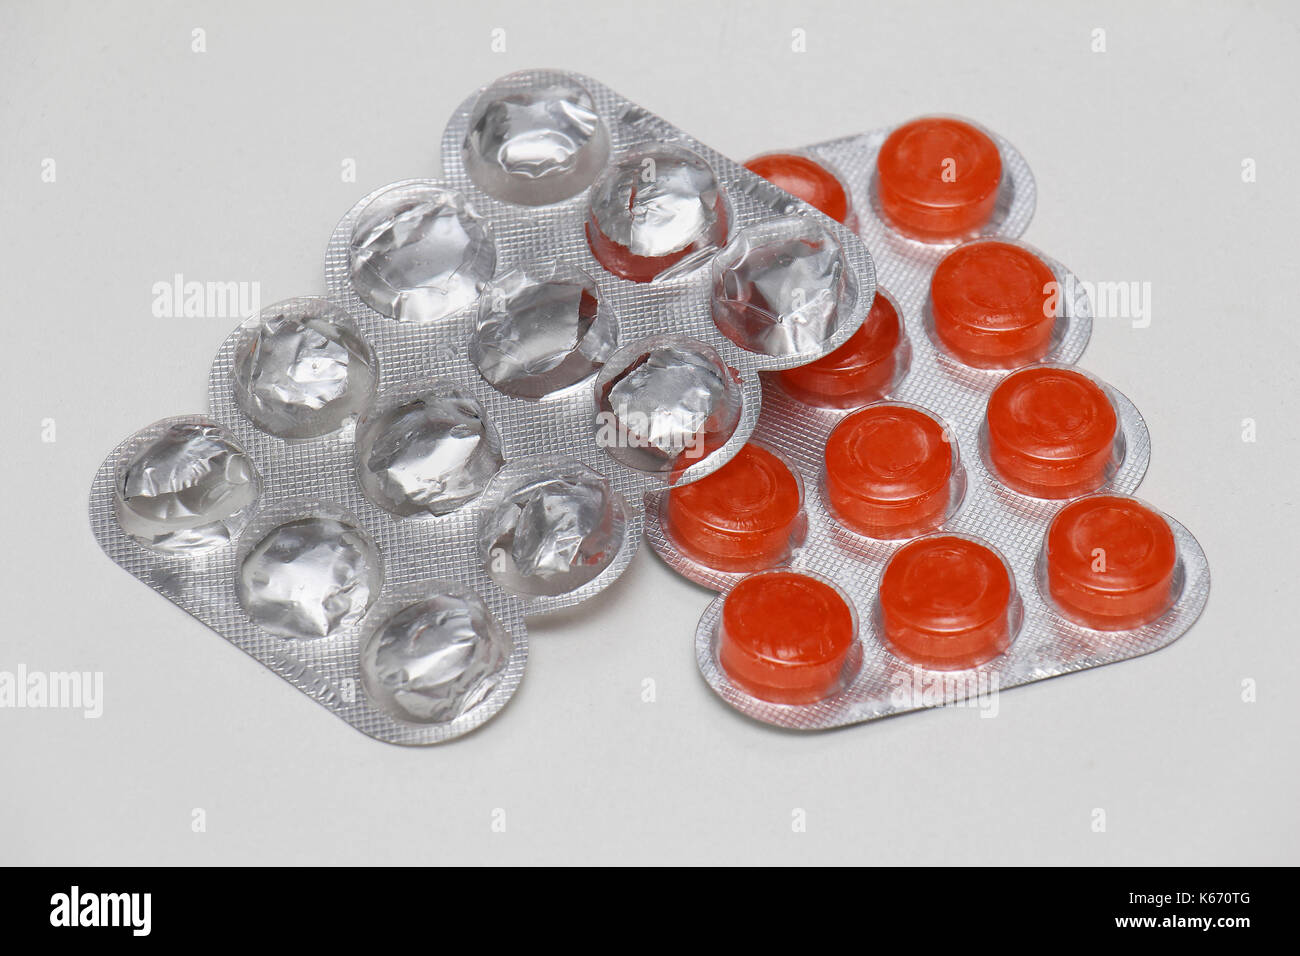 Medical lozenges healing sore throat in plastic blisters - Stock Image